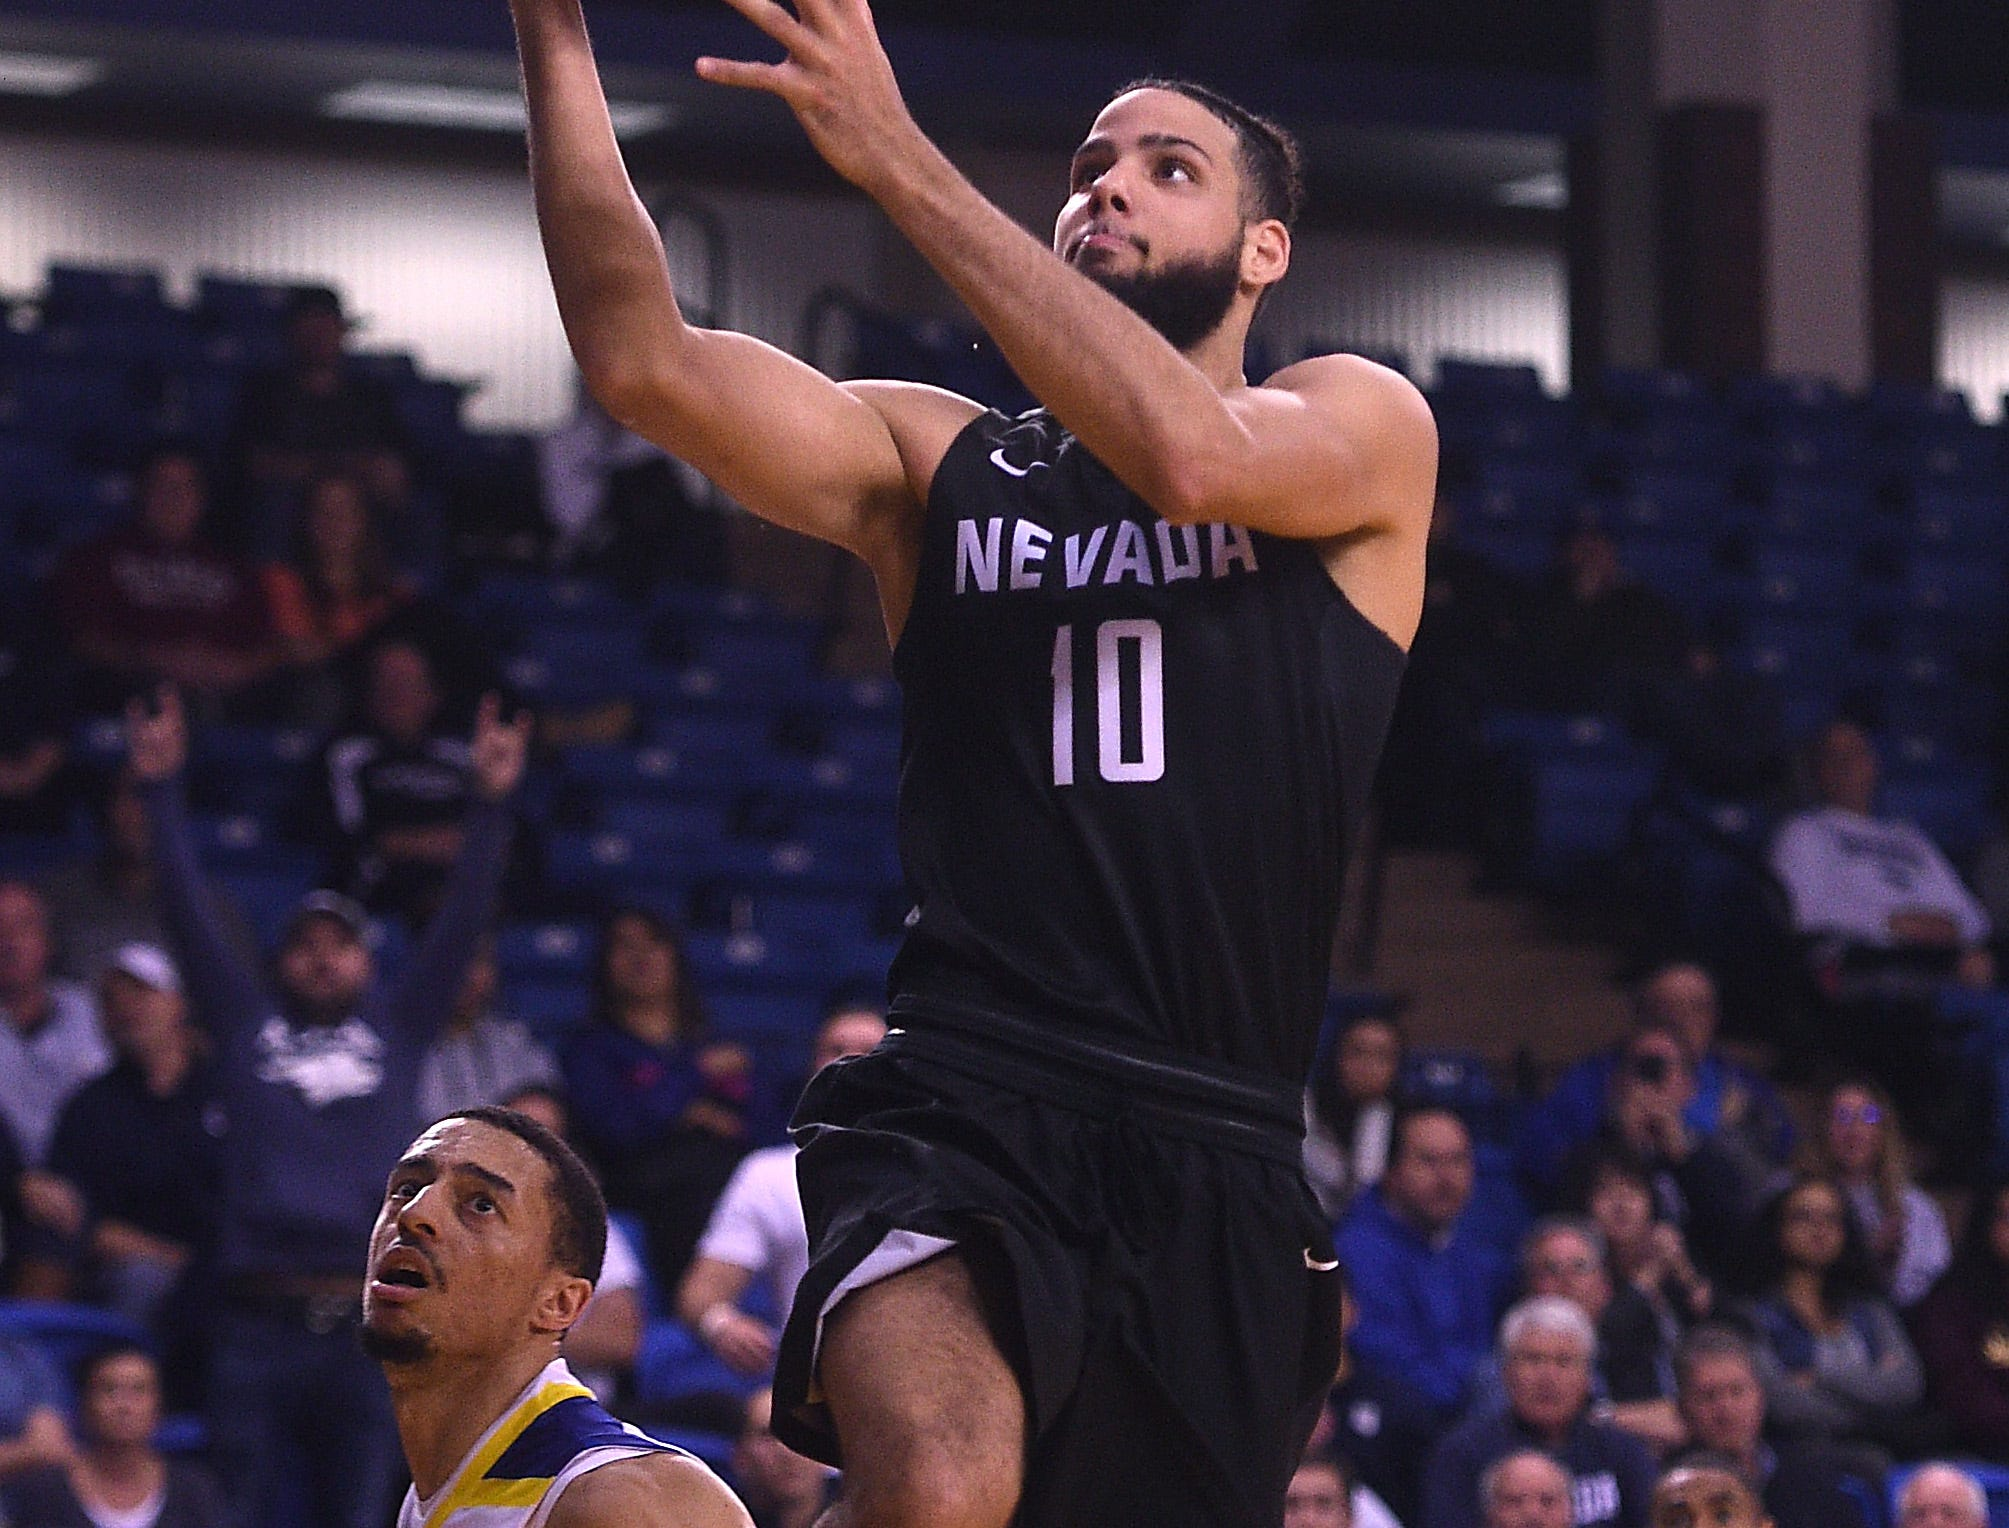 Nevada's Caleb Martin (10) looks to score while taking on San Jose State during their basketball game at the Event Center at San Jose State University on Jan. 17, 2018.